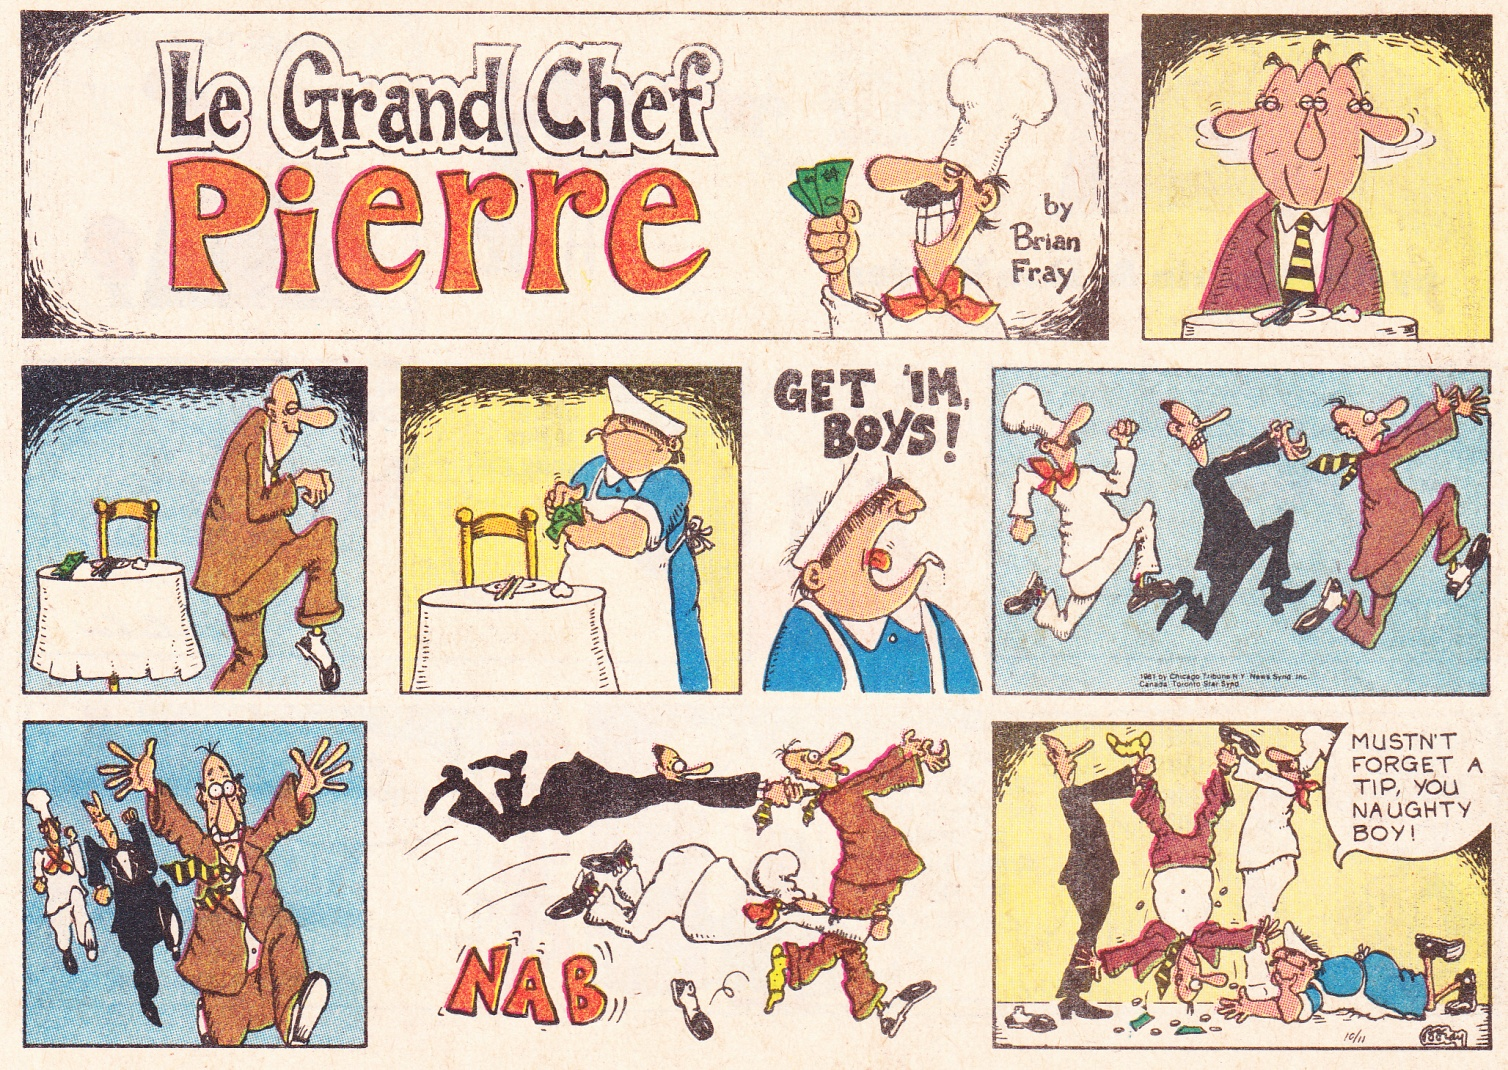 C:\Users\Robert\Documents\CARTOONING ILLUSTRATION ANIMATION\IMAGE CARTOON\IMAGE CARTOON G\GRAND CHEF PIERRE [LE], Winnipeg Free Press, 10 Oct 1981, 5.jpg